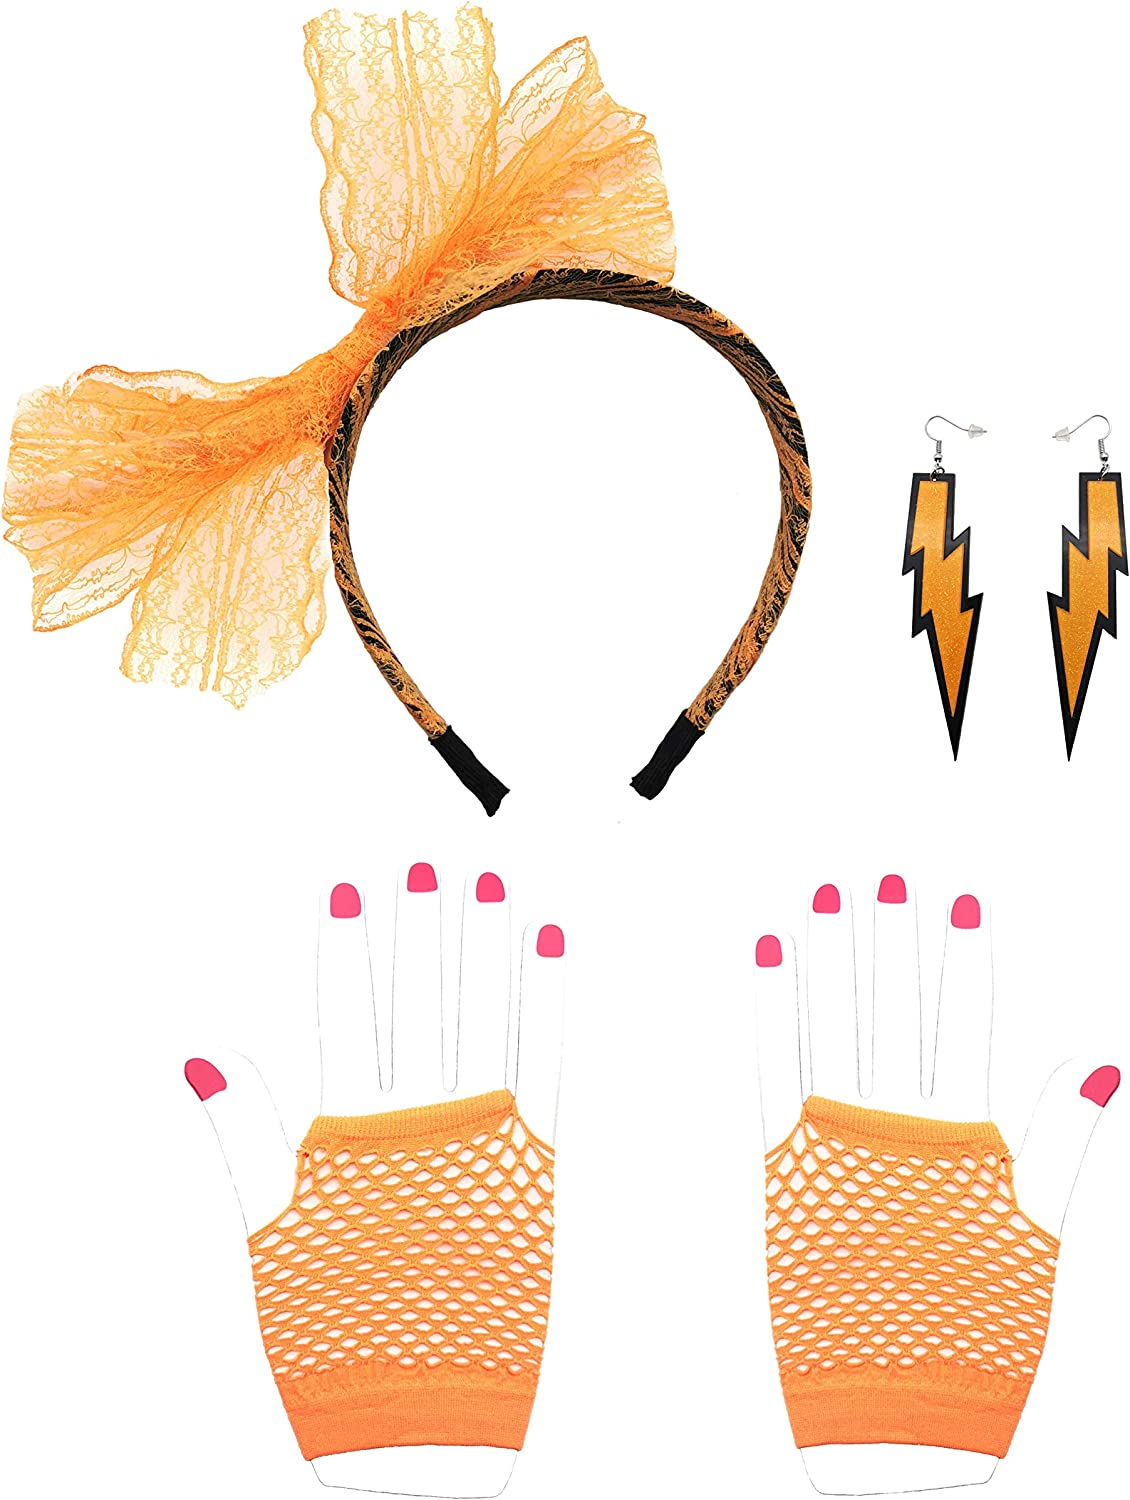 Orange 80s Neon Lace Headband Earrings Fingerless Fishnet Gloves Womens 80s Costume Accessories 3 Set for 80s Party